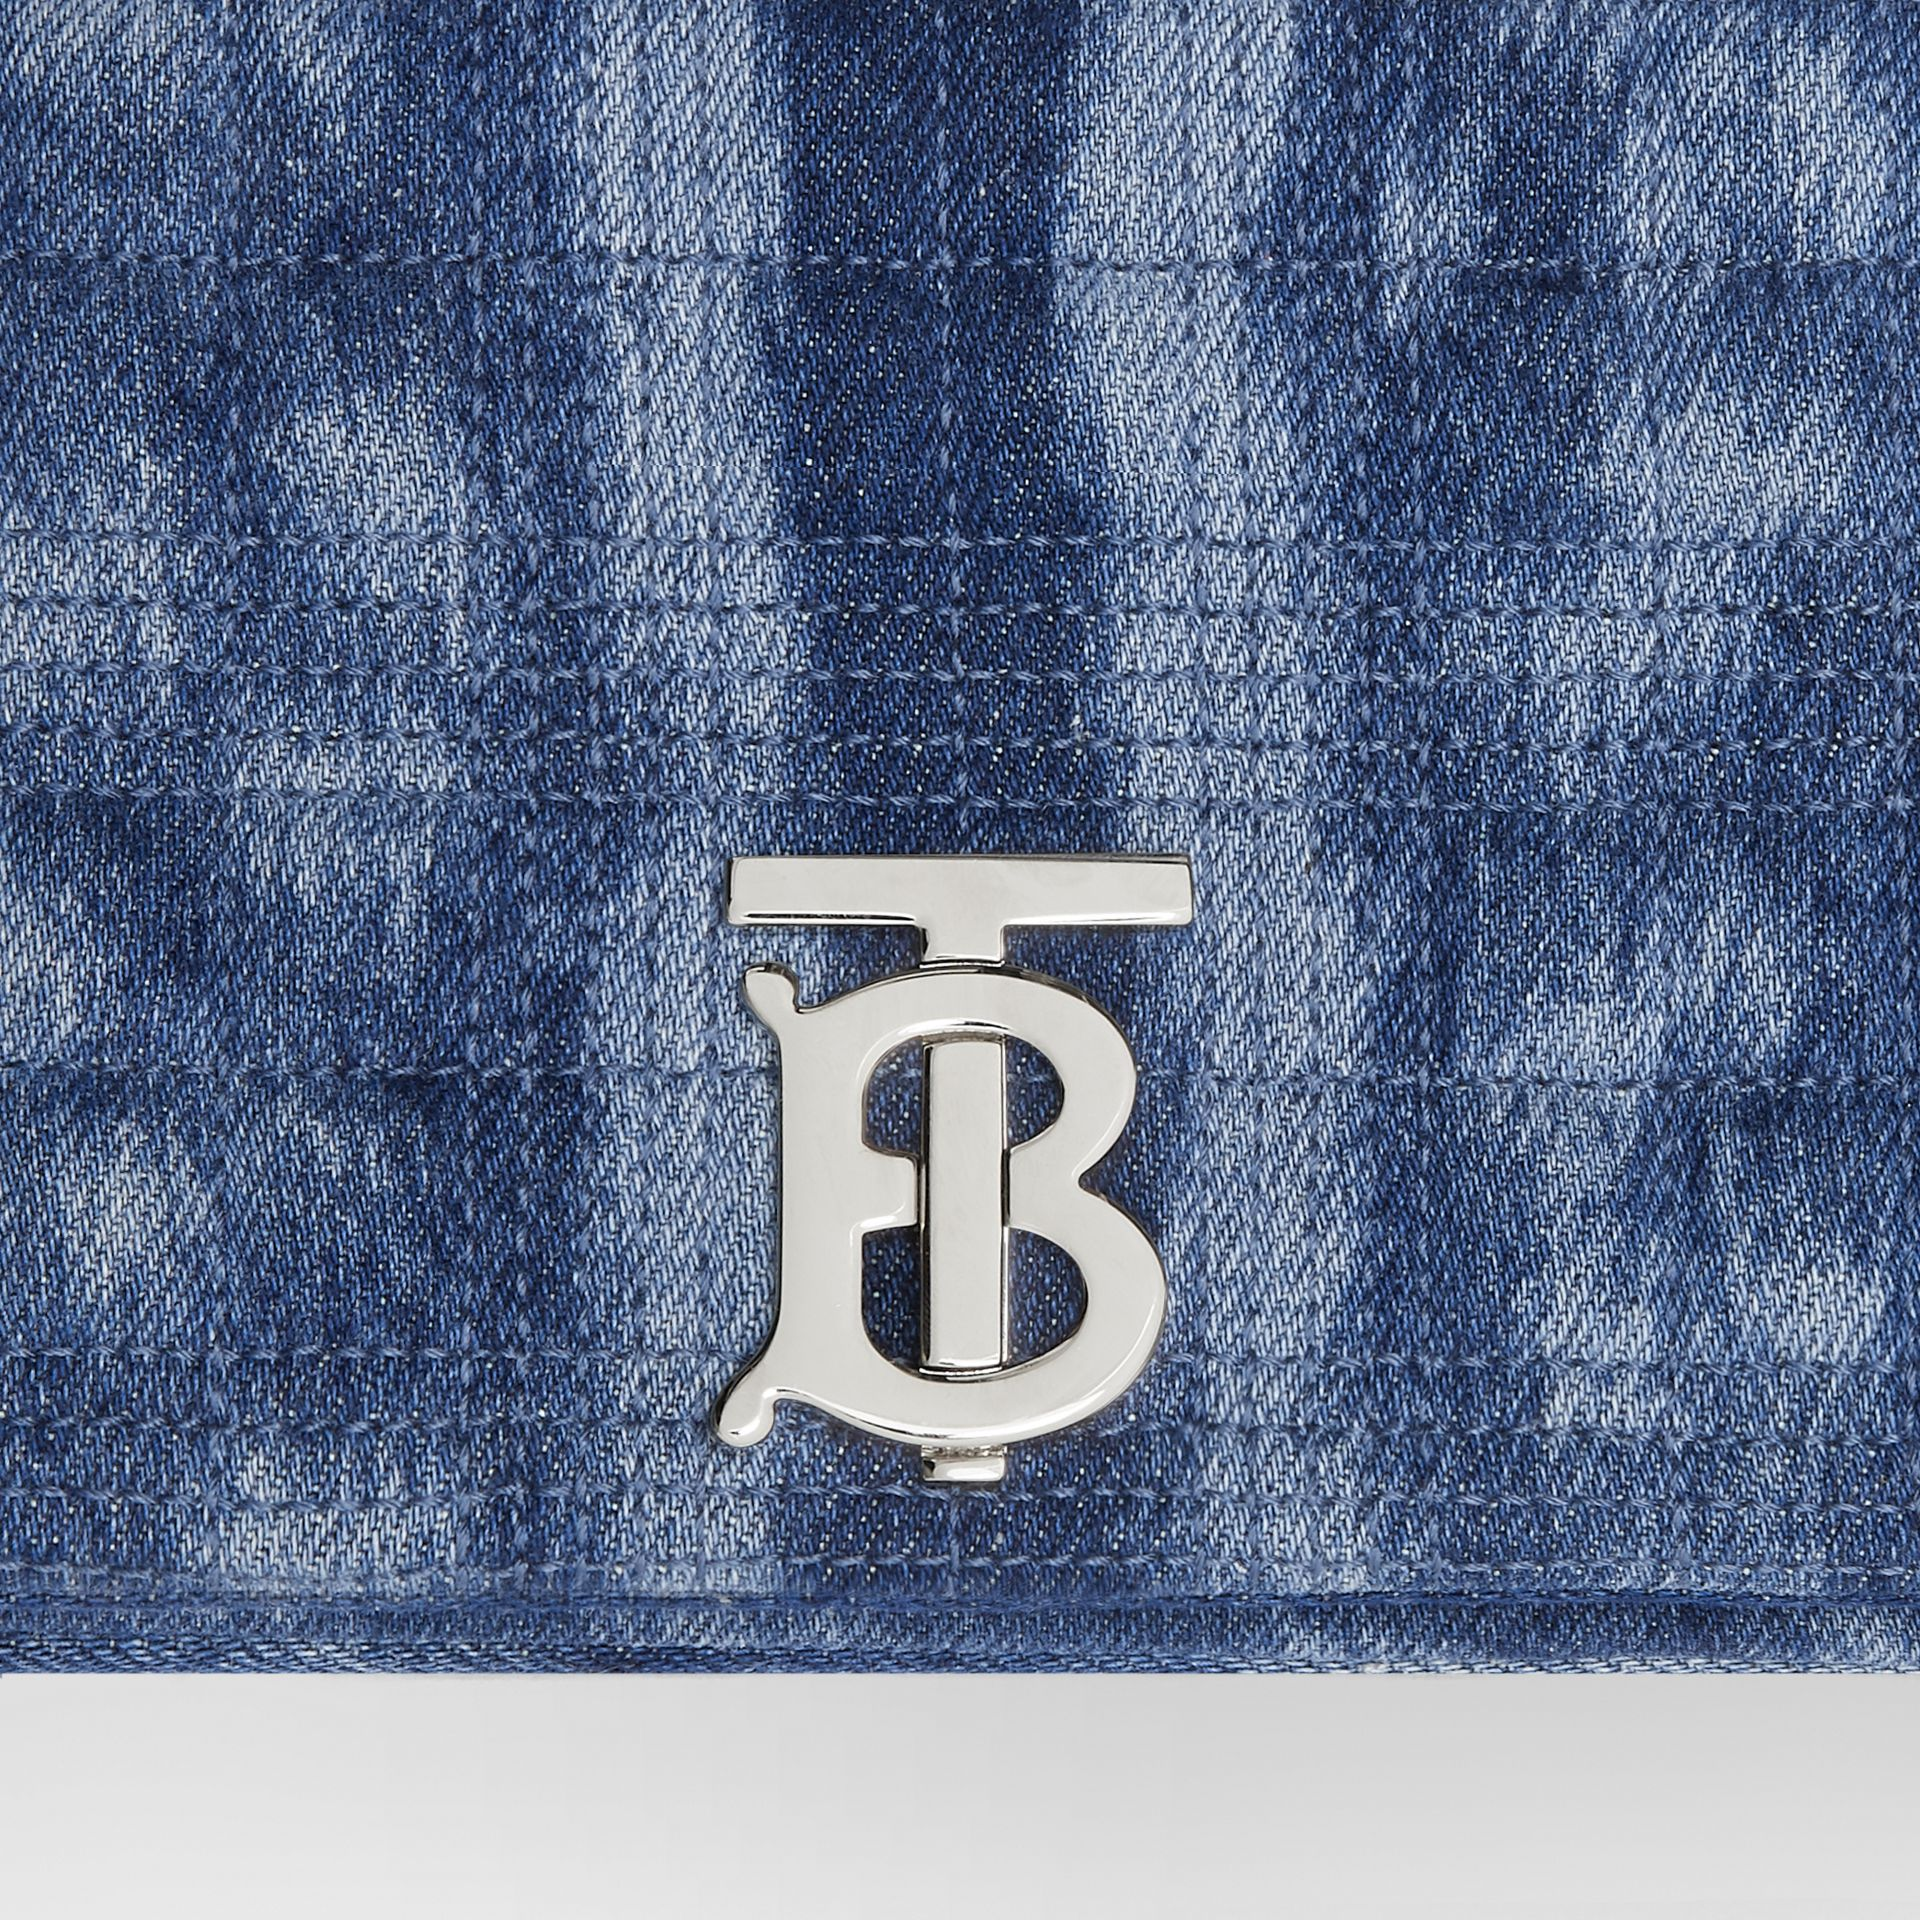 Small Quilted Denim Lola Bag in Blue - Women | Burberry - gallery image 1